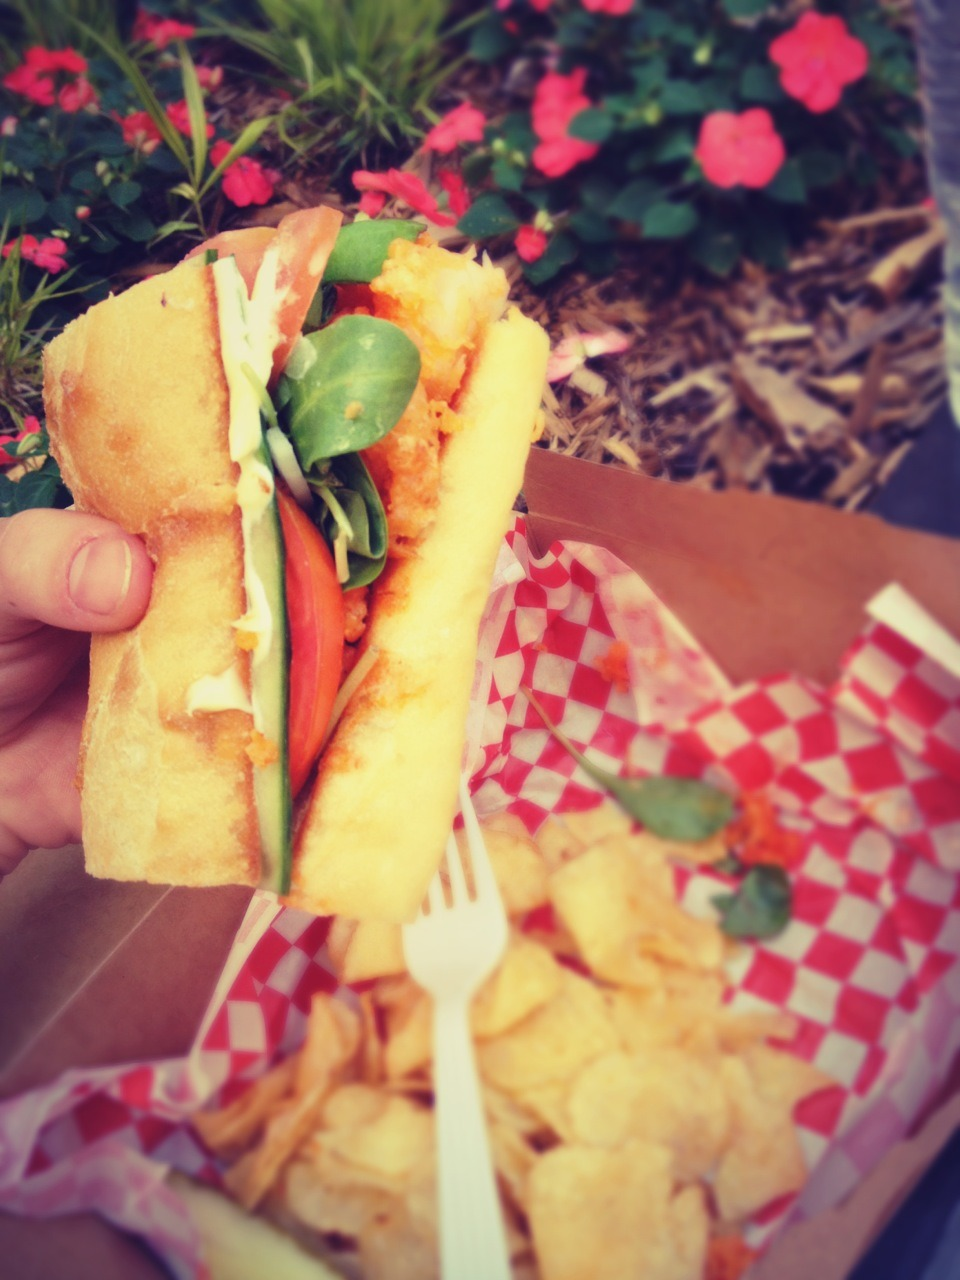 ezsfood:  A prawn sandwich from a food truck in Minneapolis. Amazing.   Smack Shack strikes again!